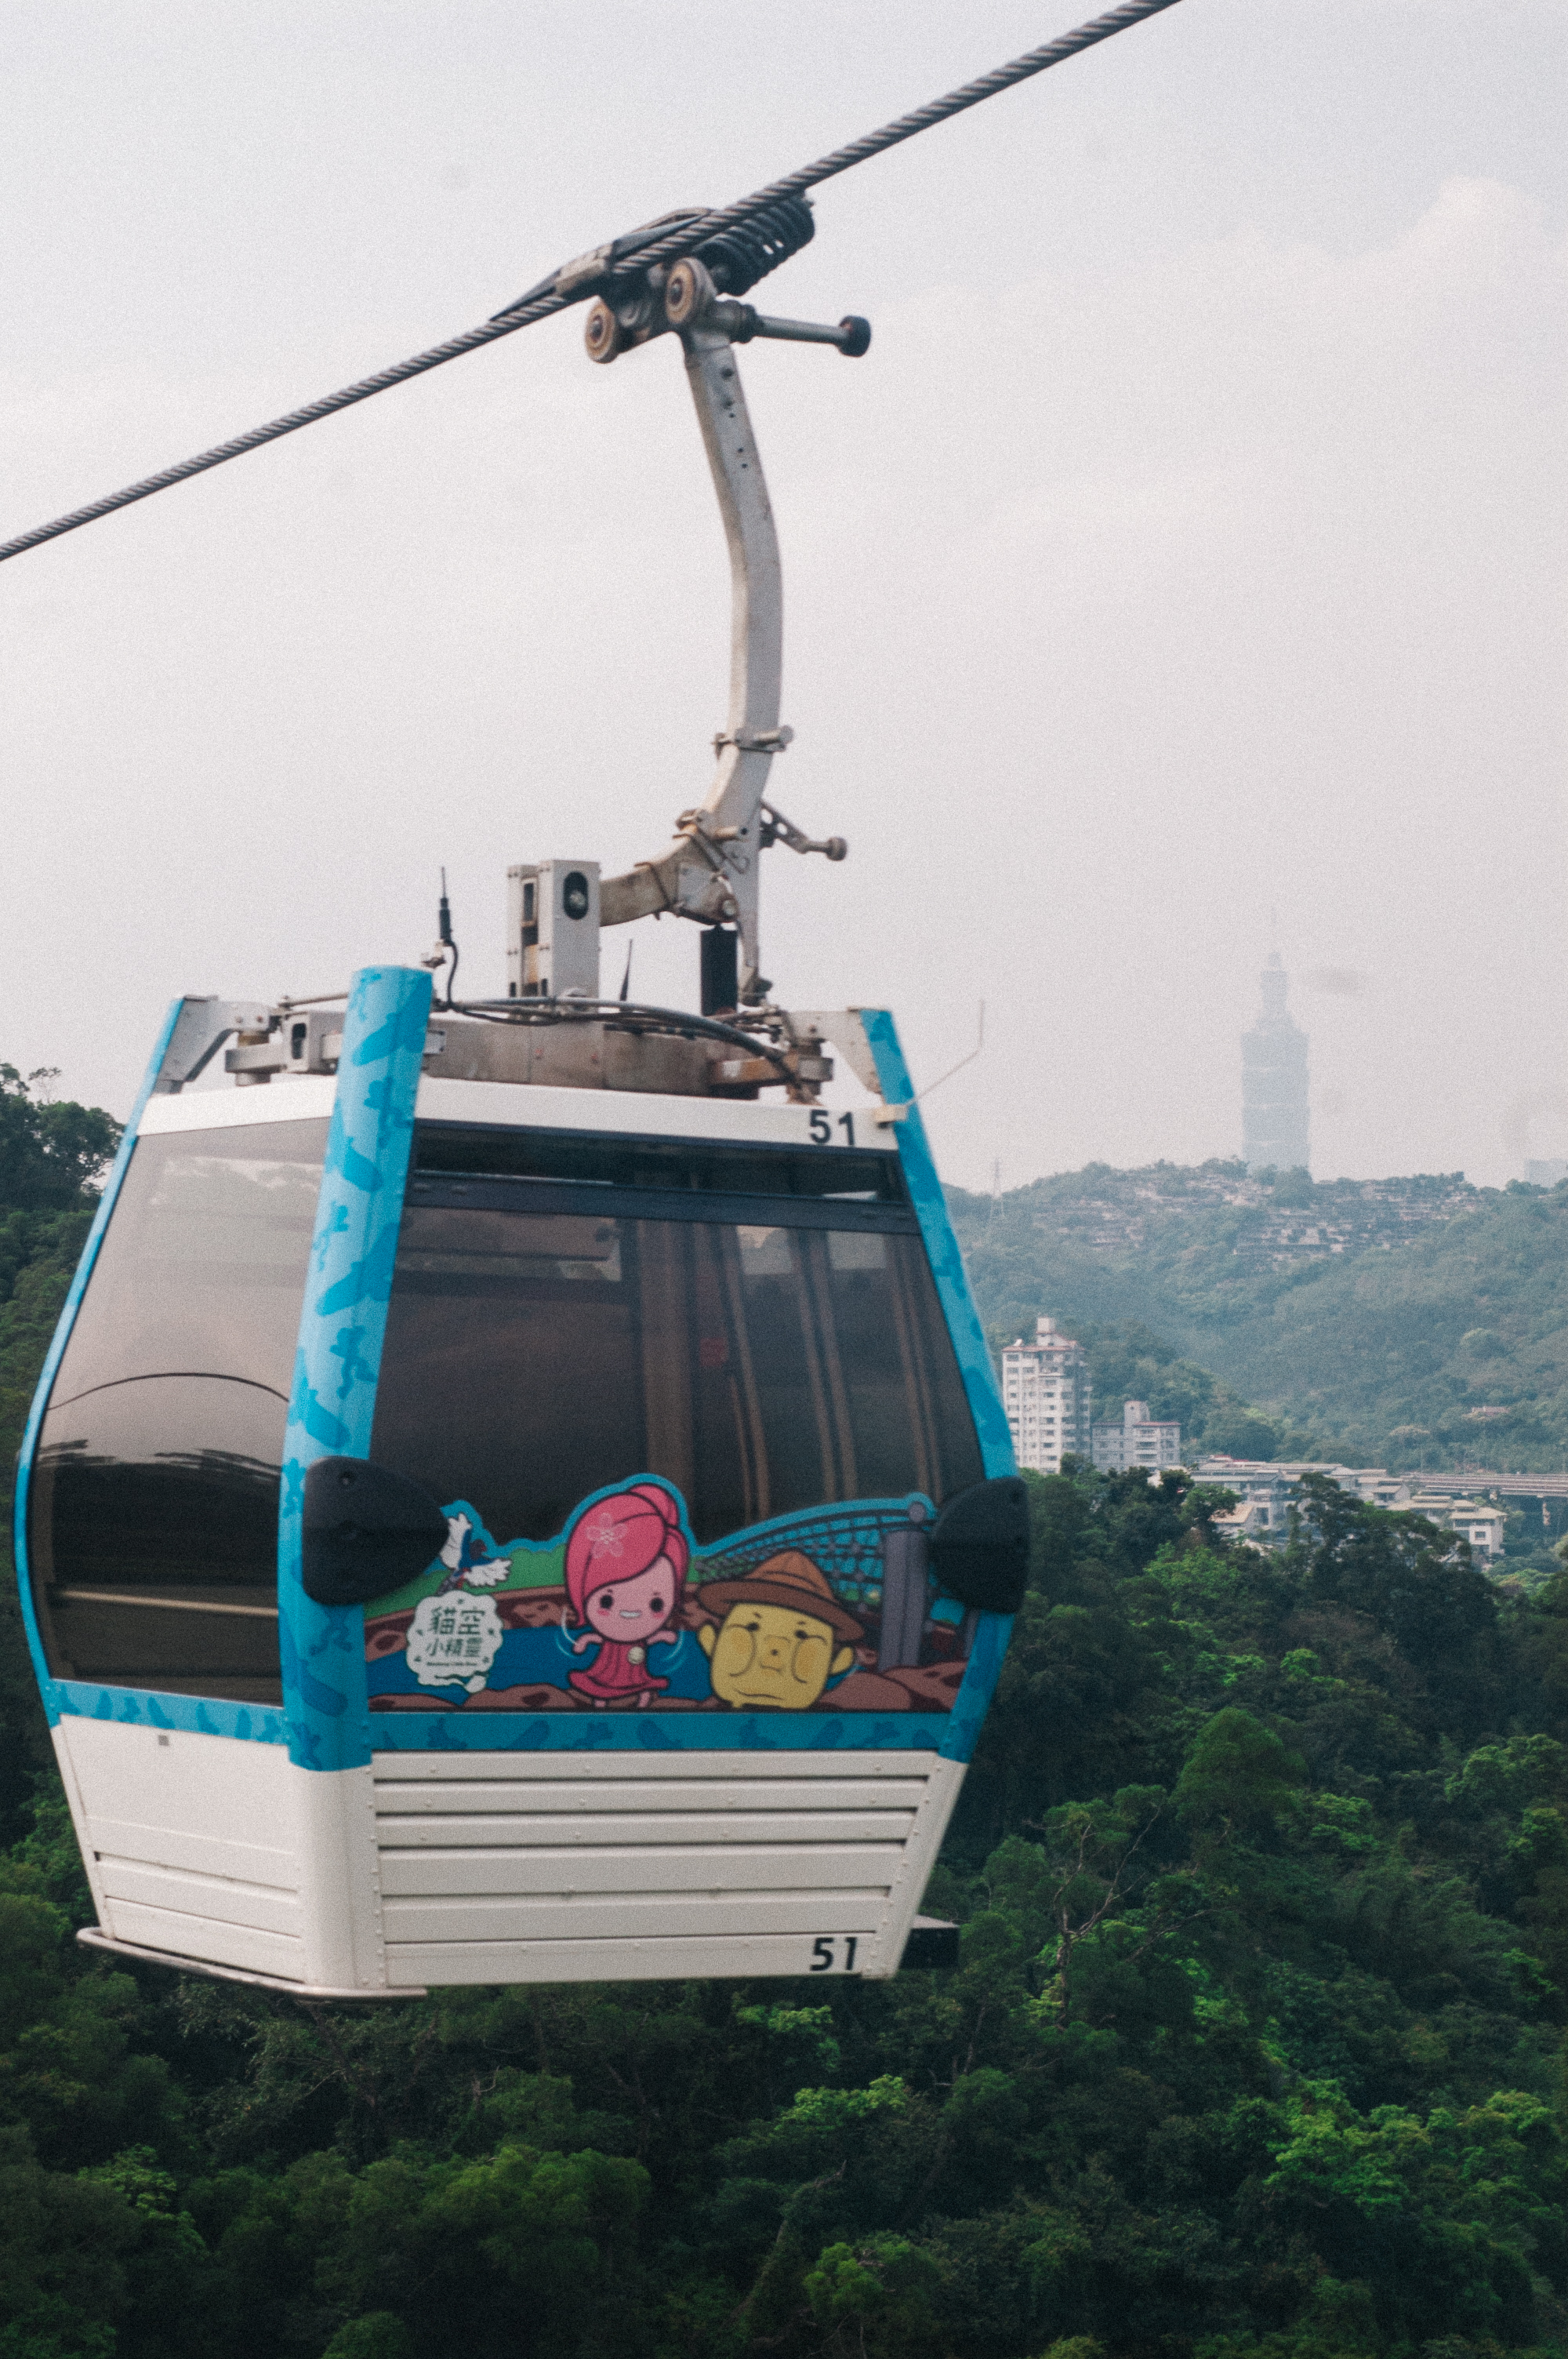 Taipei 101 in the background -->